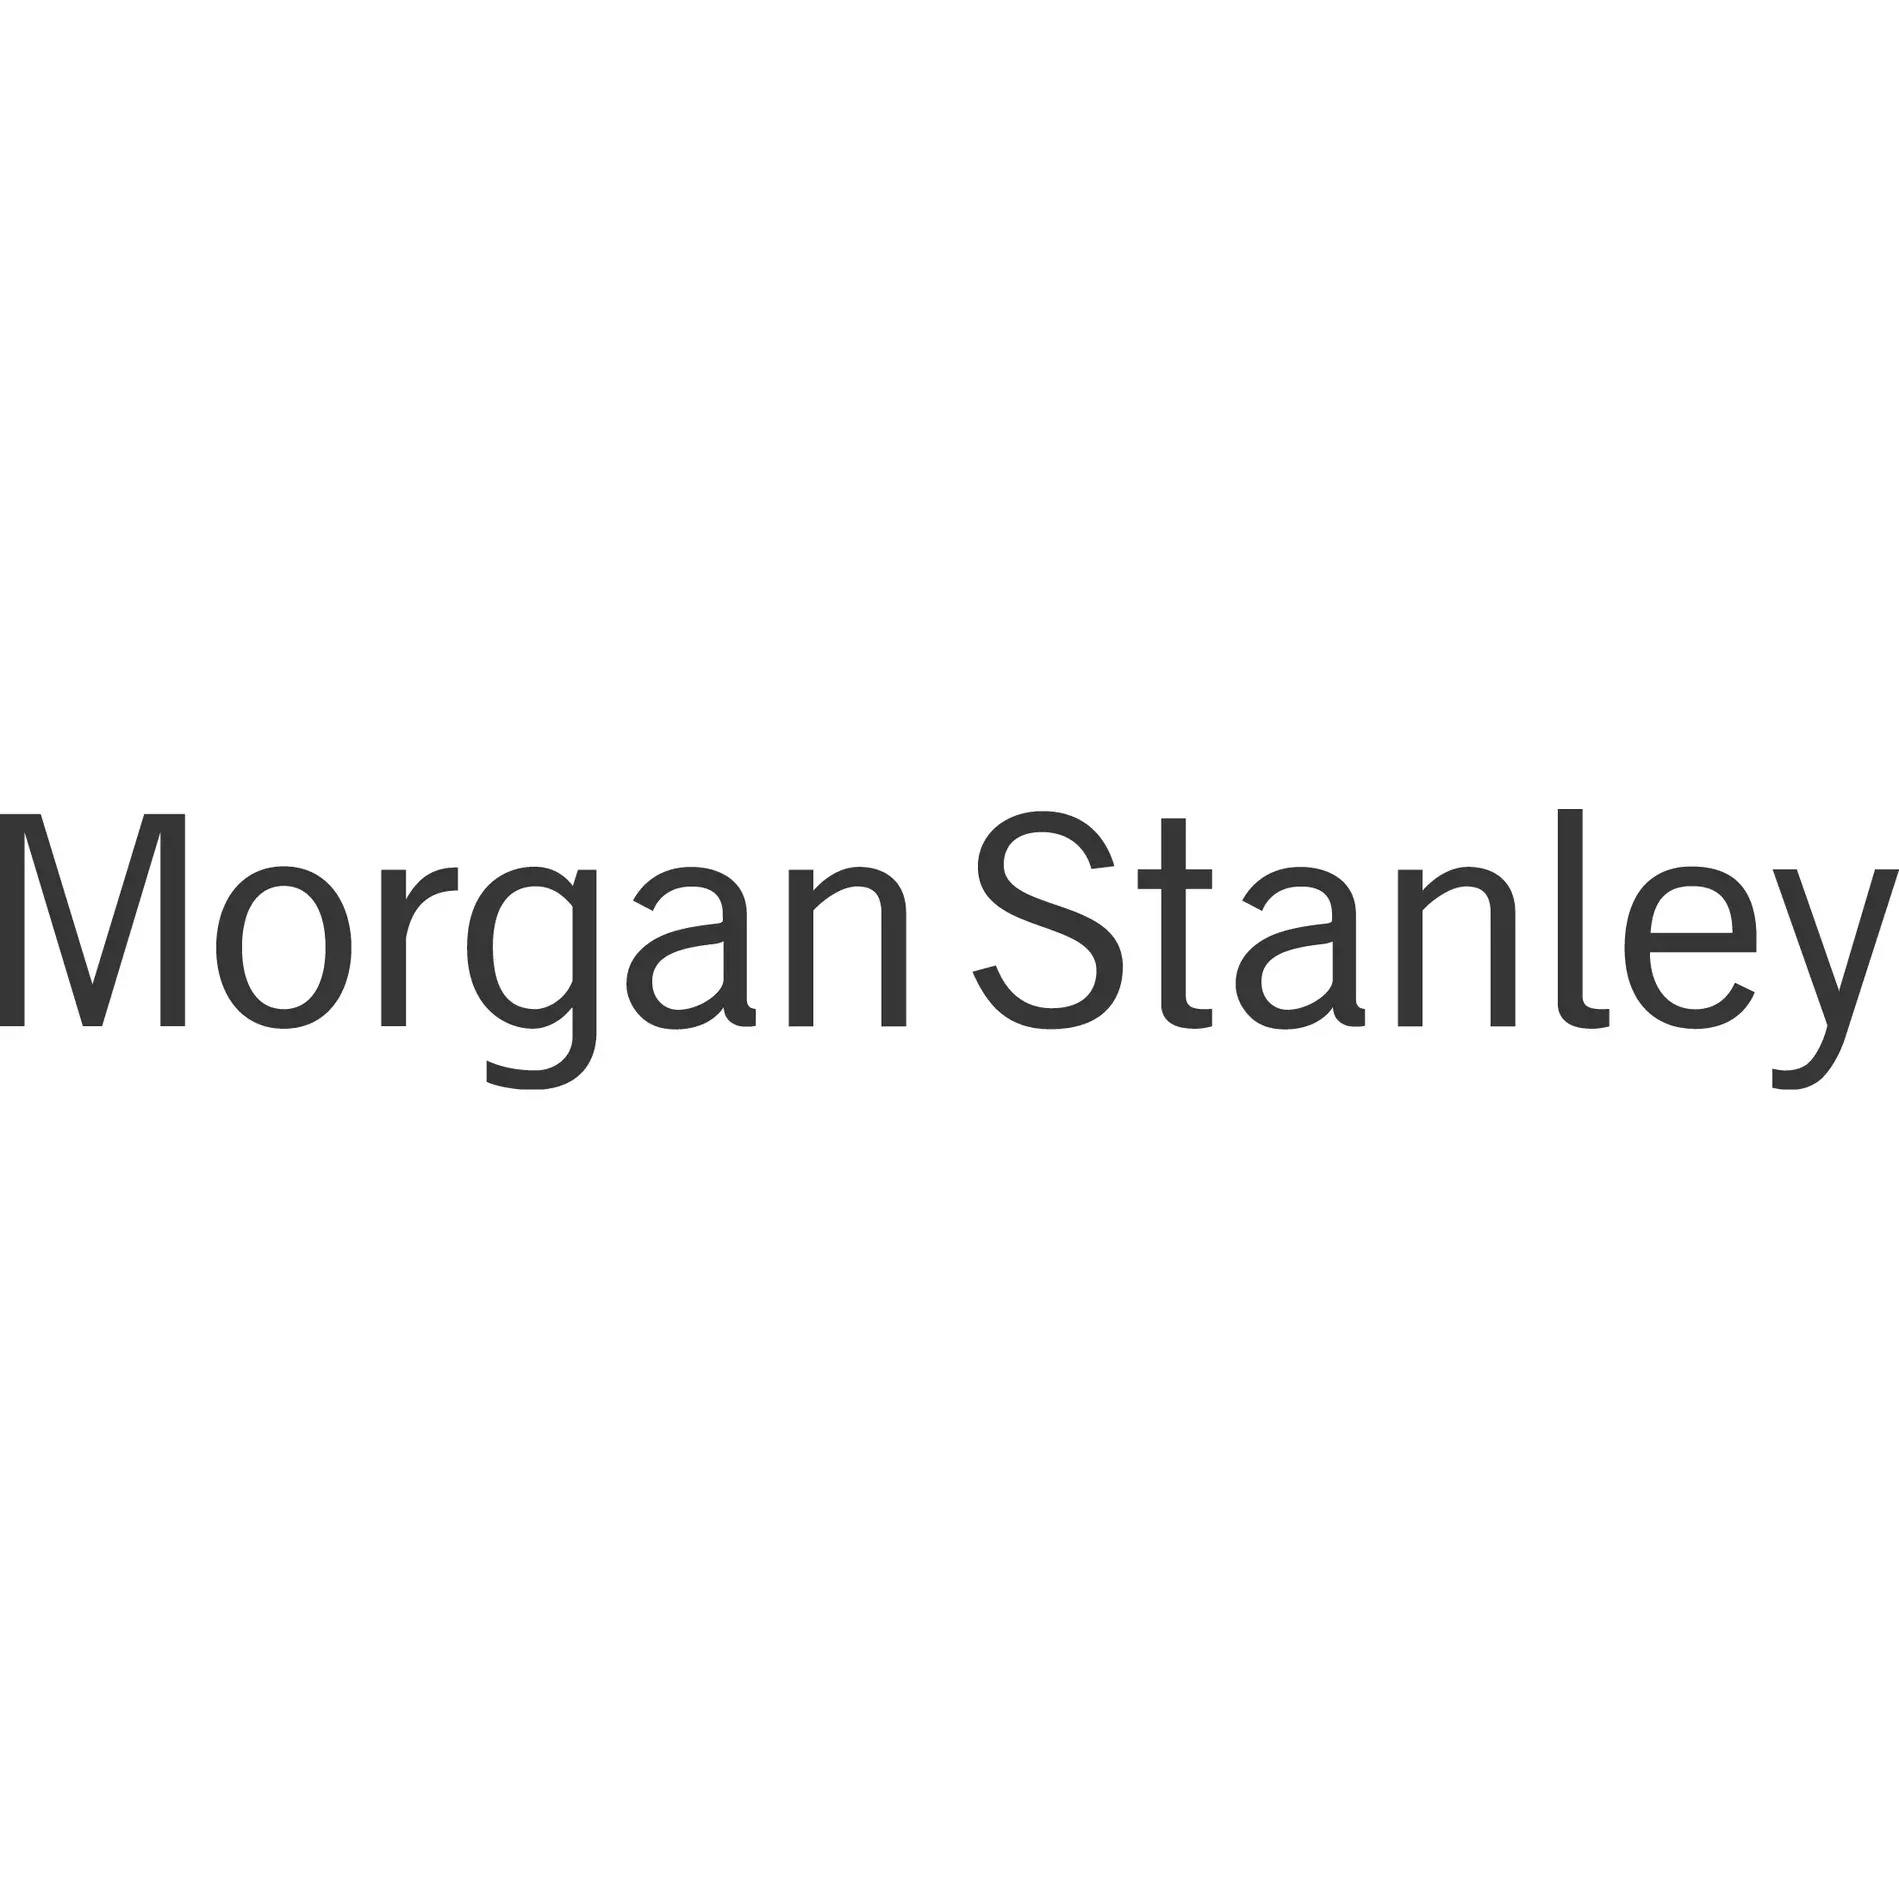 Makenzie Smith - Morgan Stanley | Financial Advisor in Pasadena,California